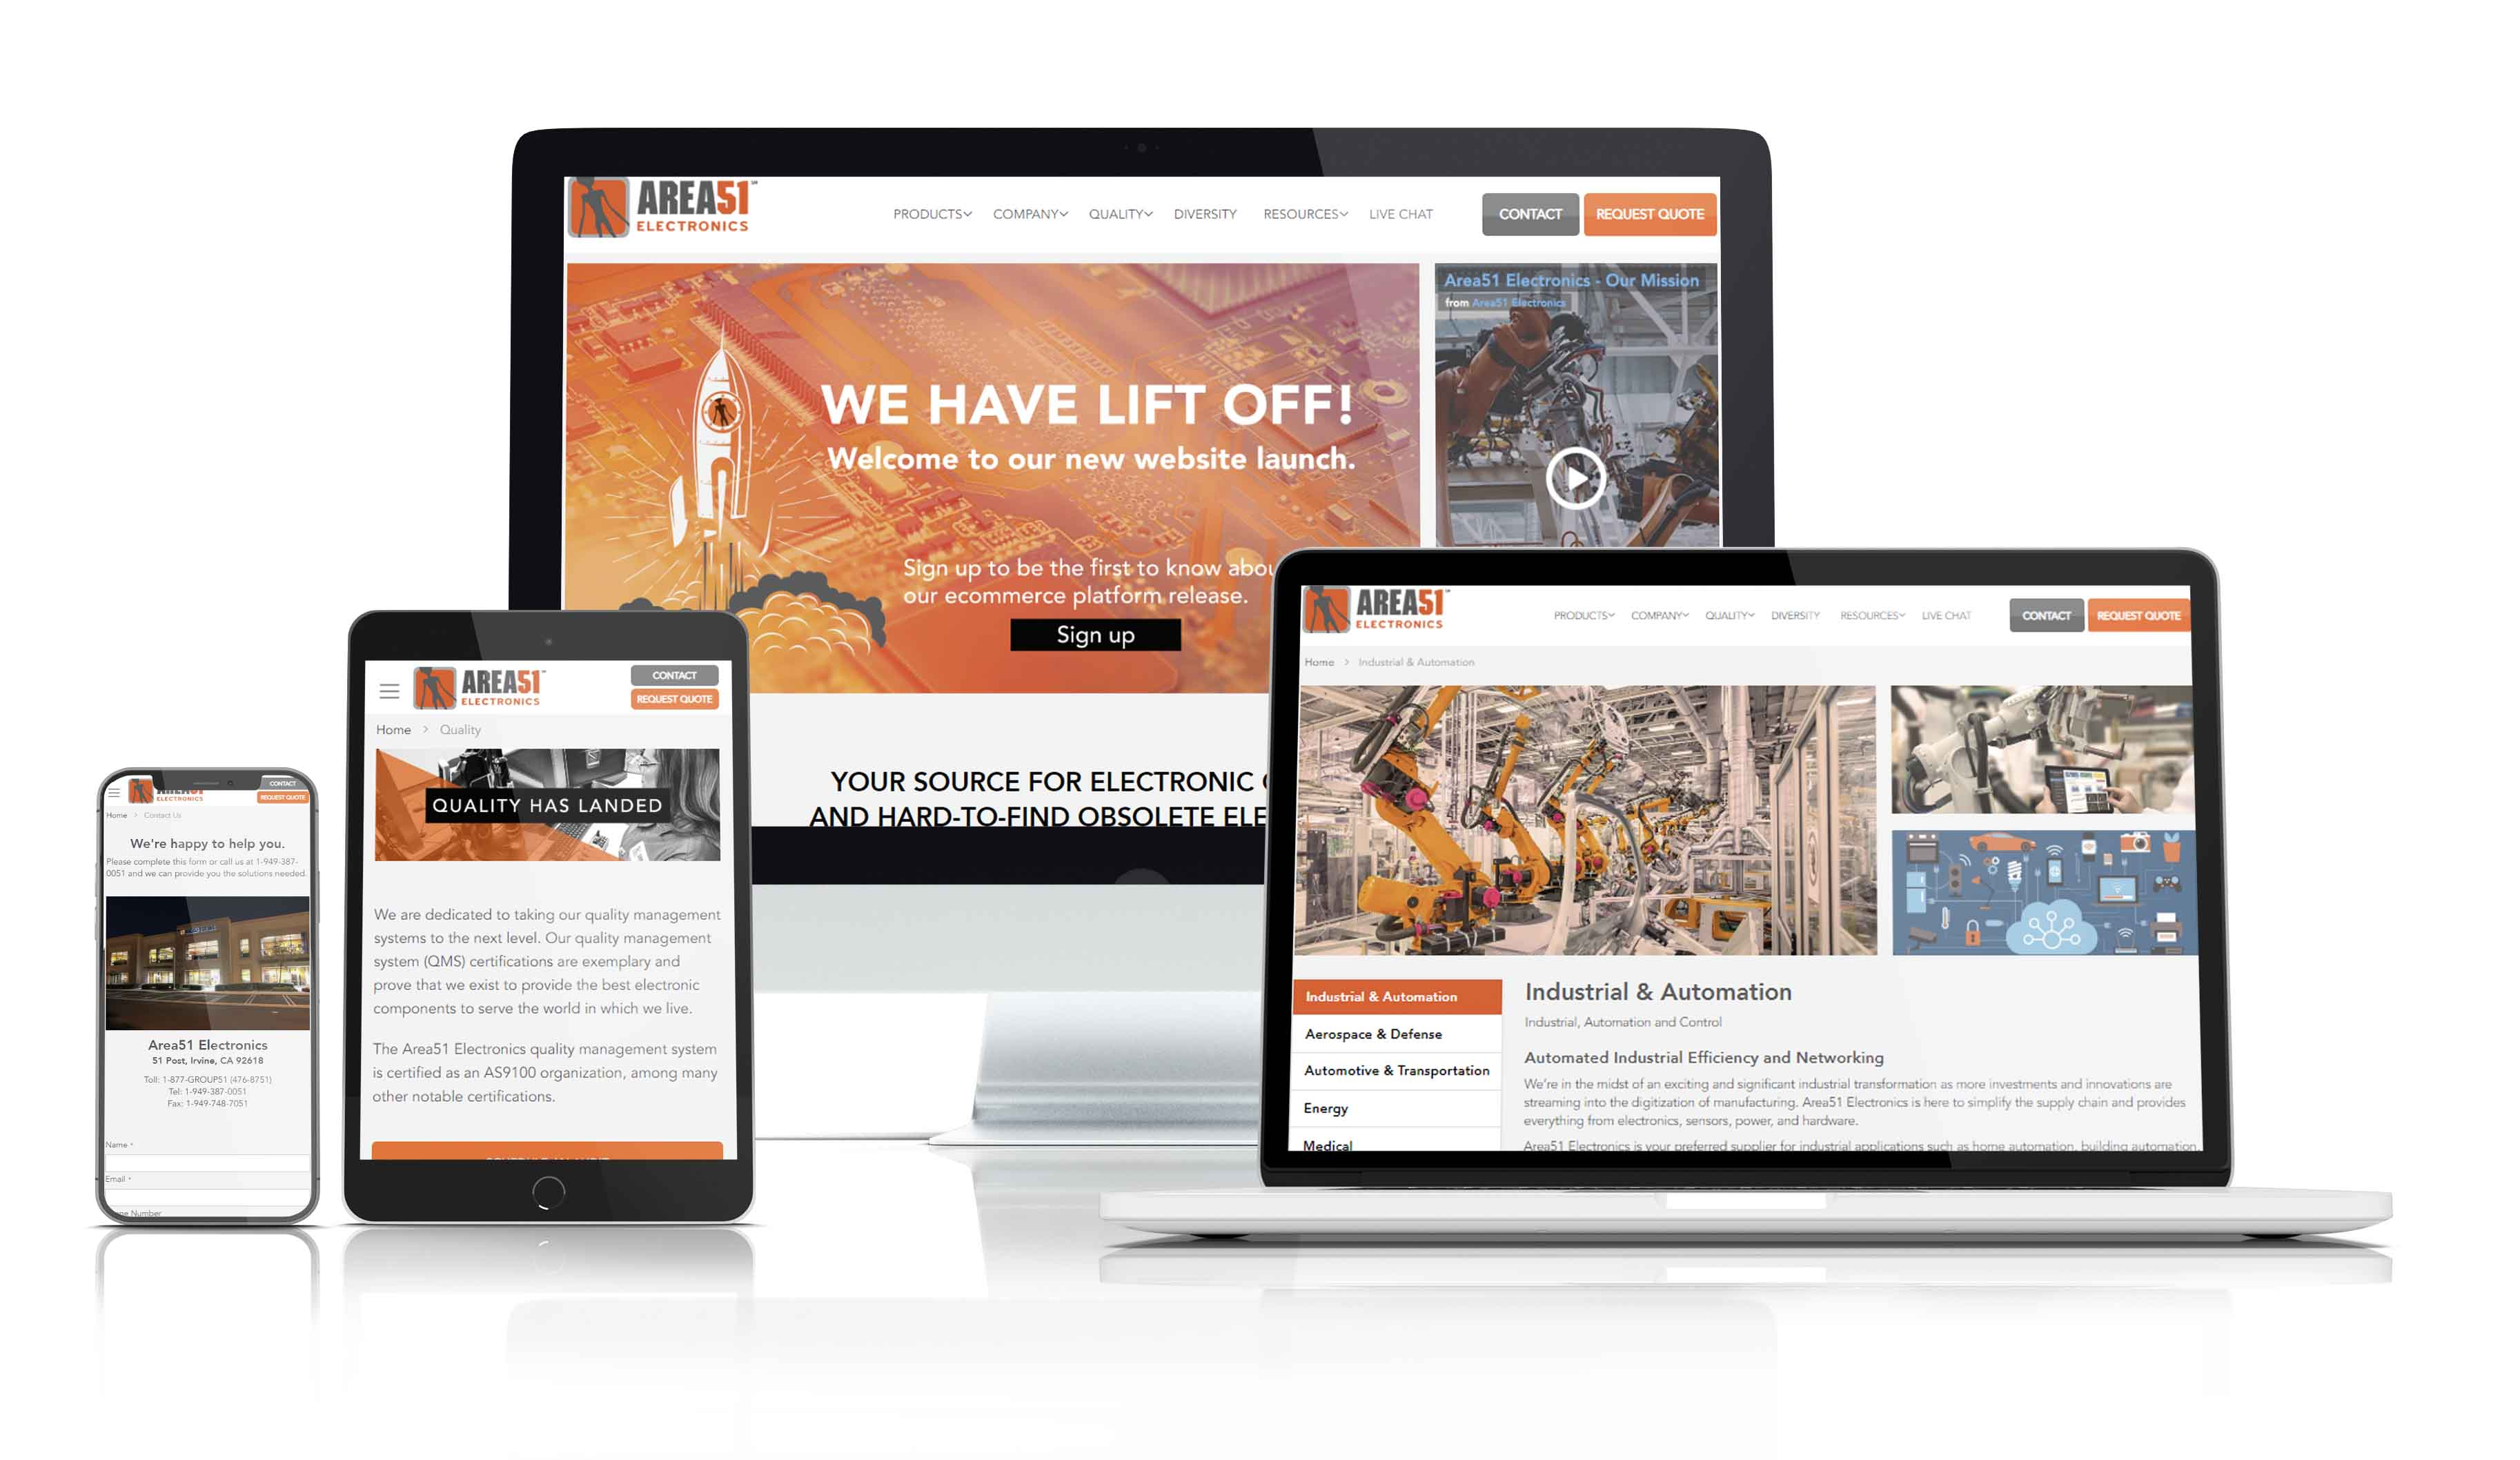 Introducing the new Area51 Electronics Website!